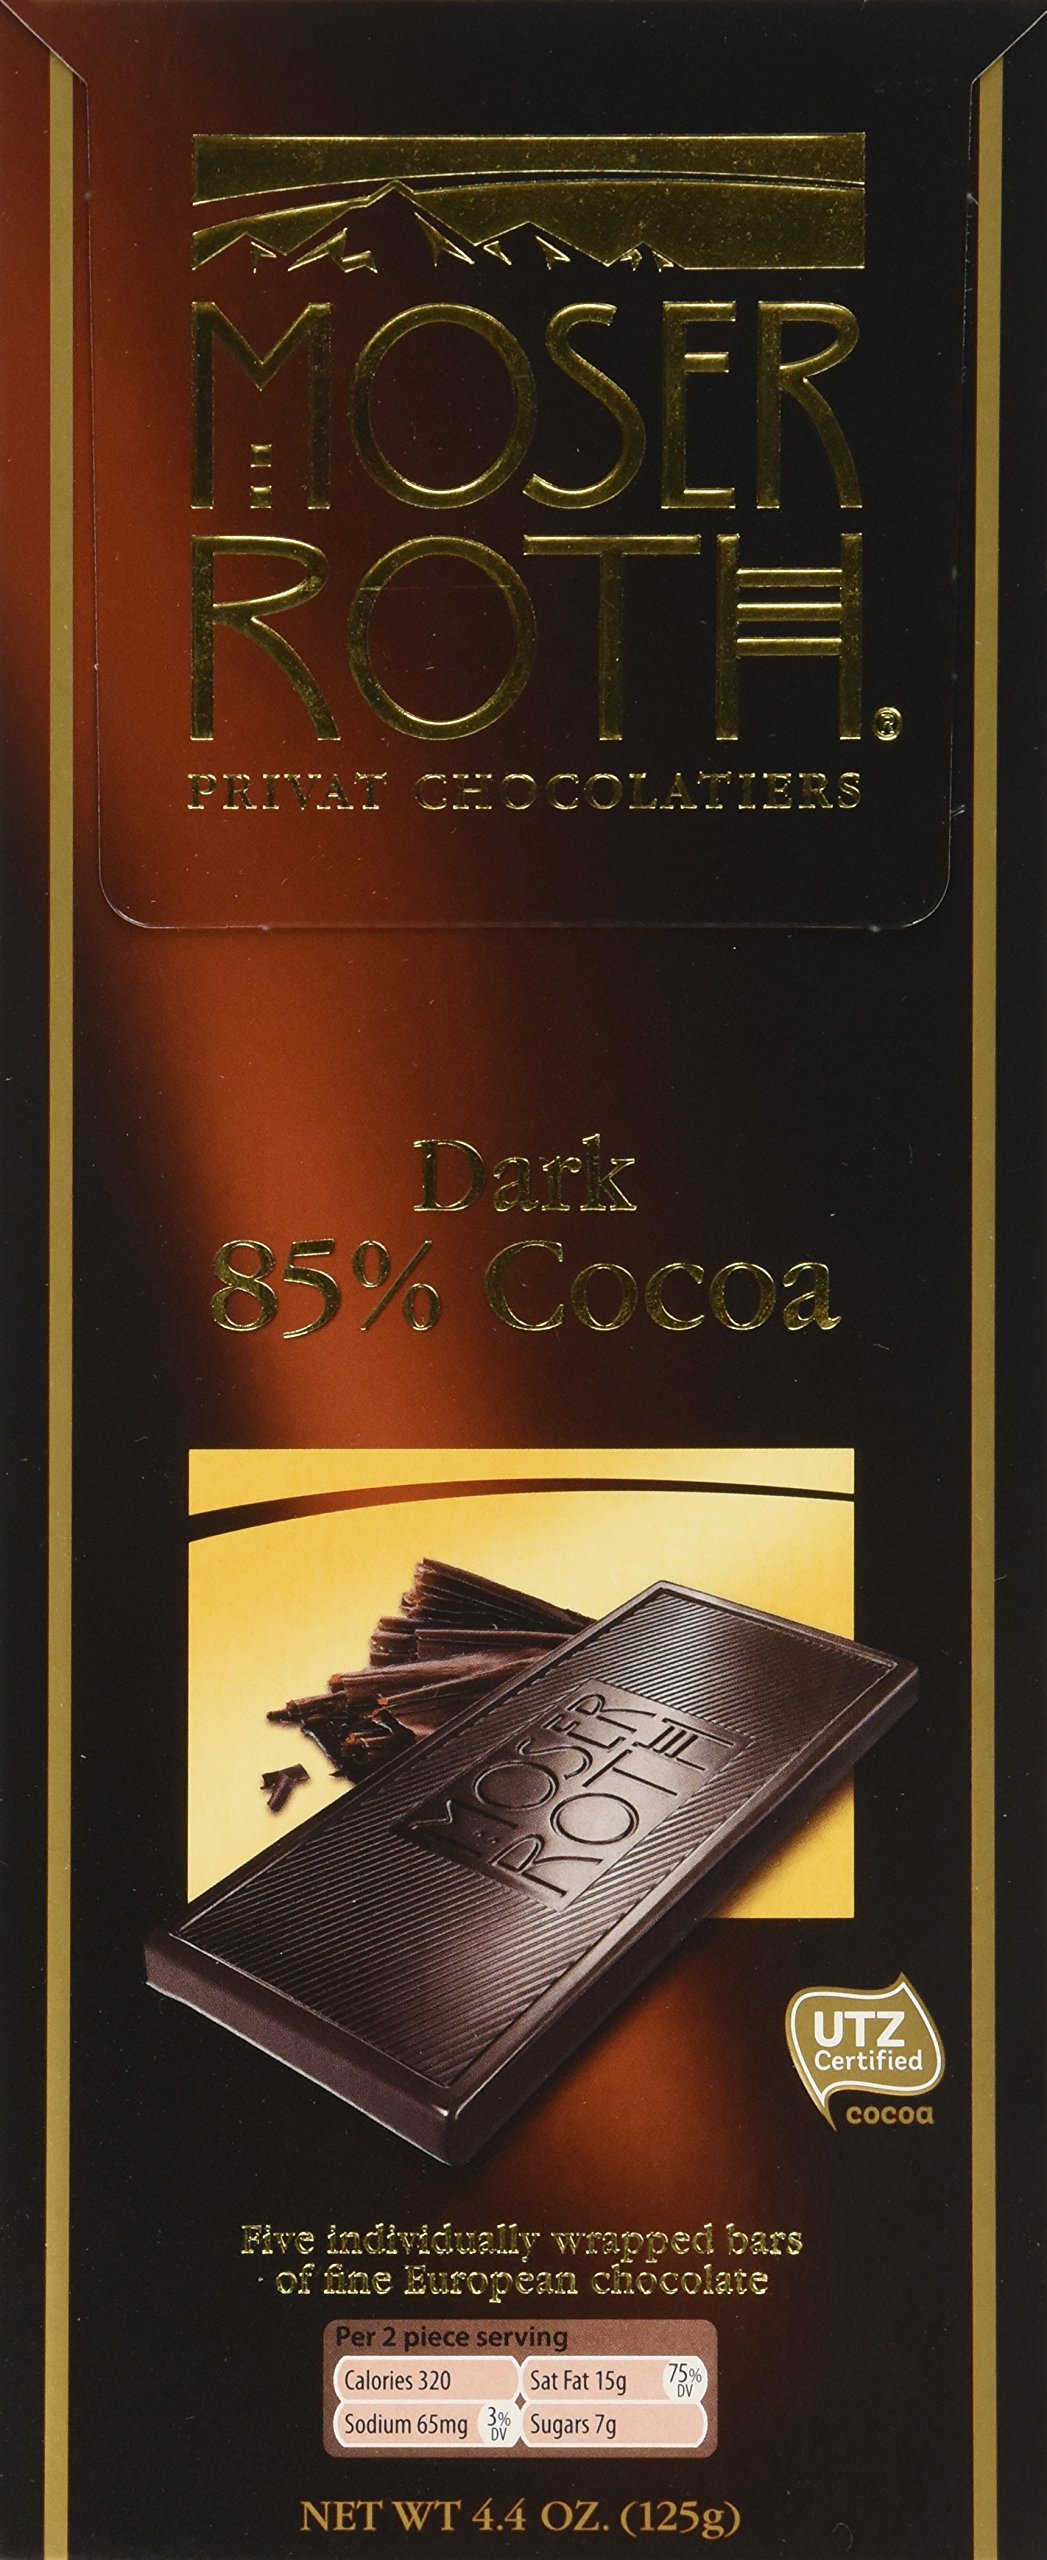 Moser Roth Privat Chocolatiers 85% Cocoa 4 Packs